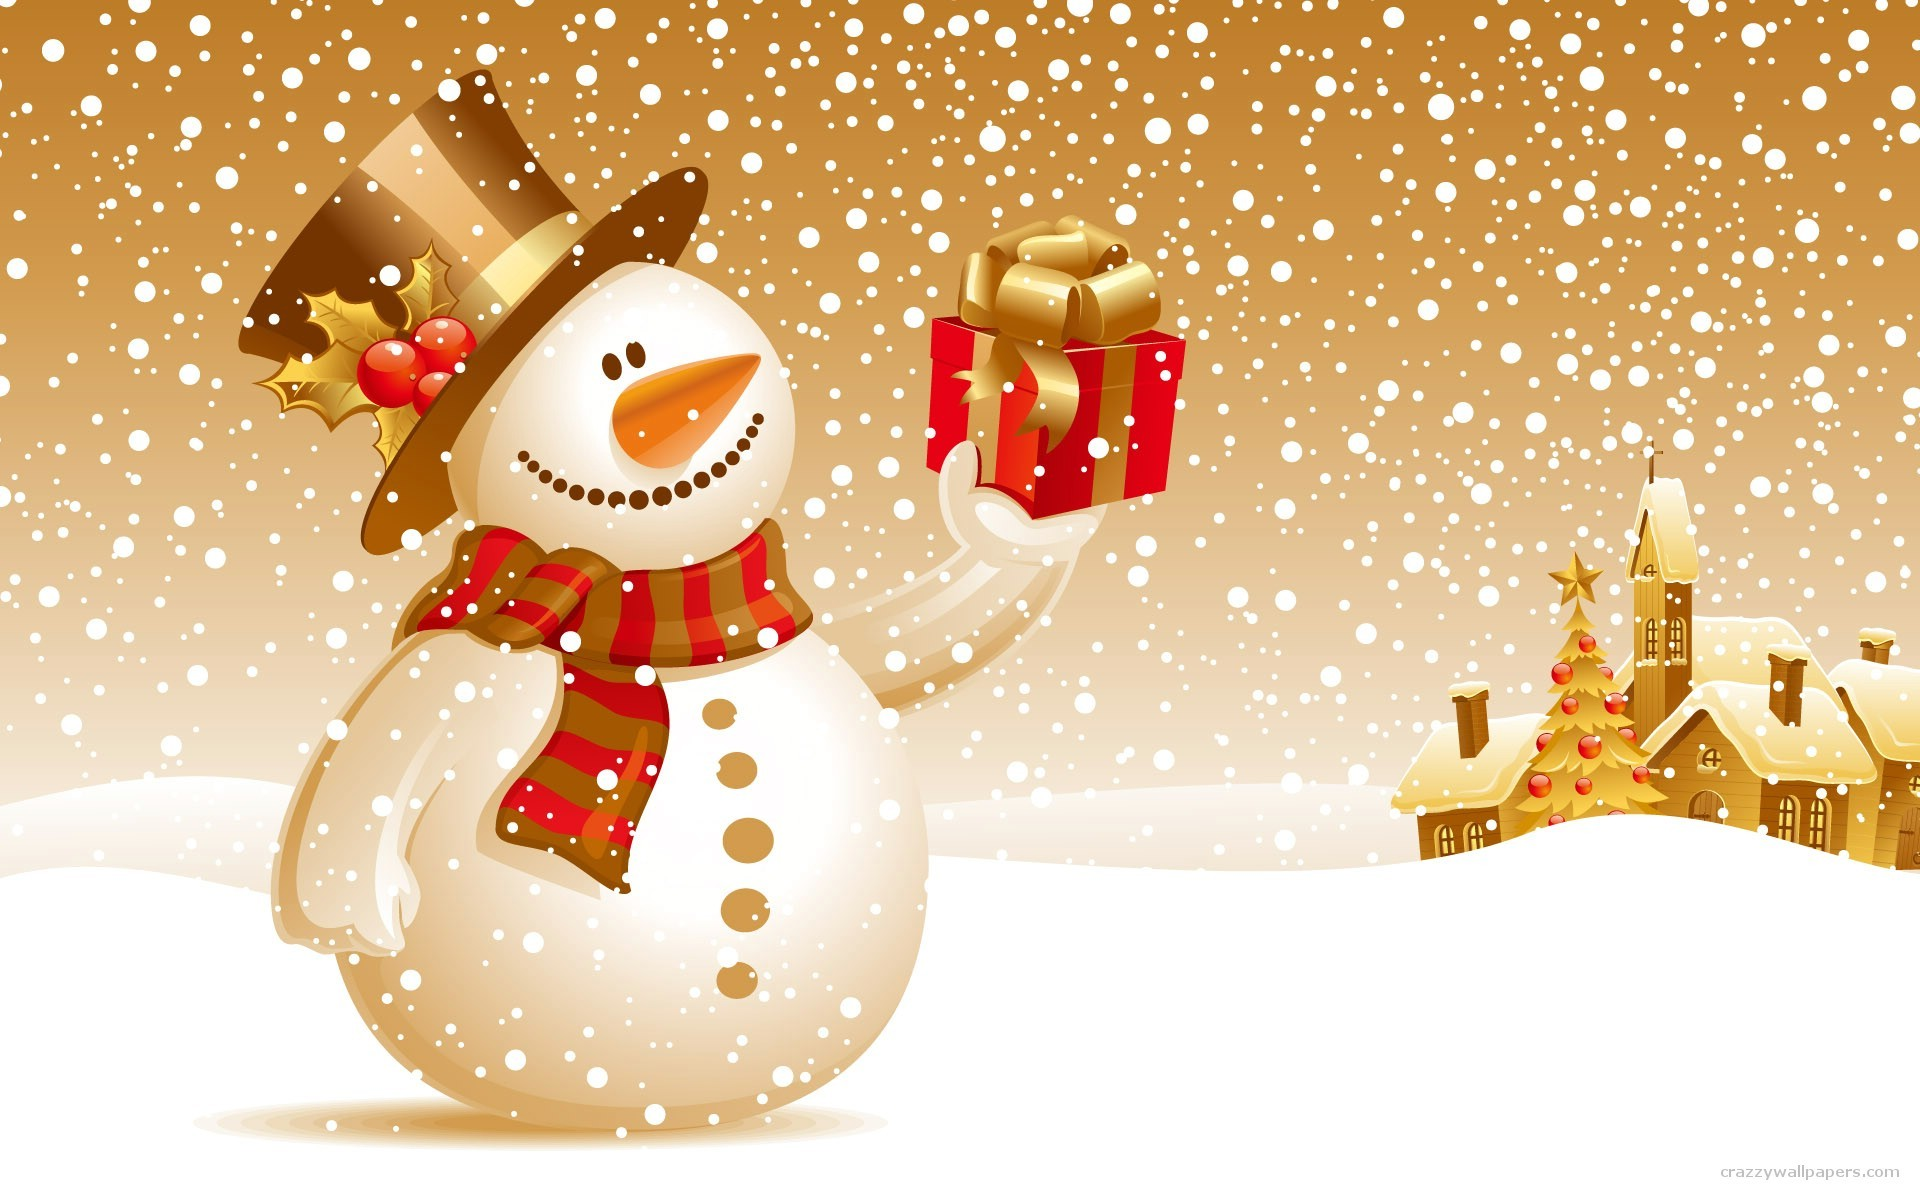 1920x1200 25 Cool Widescreen Christmas Wallpapers | Blaberize